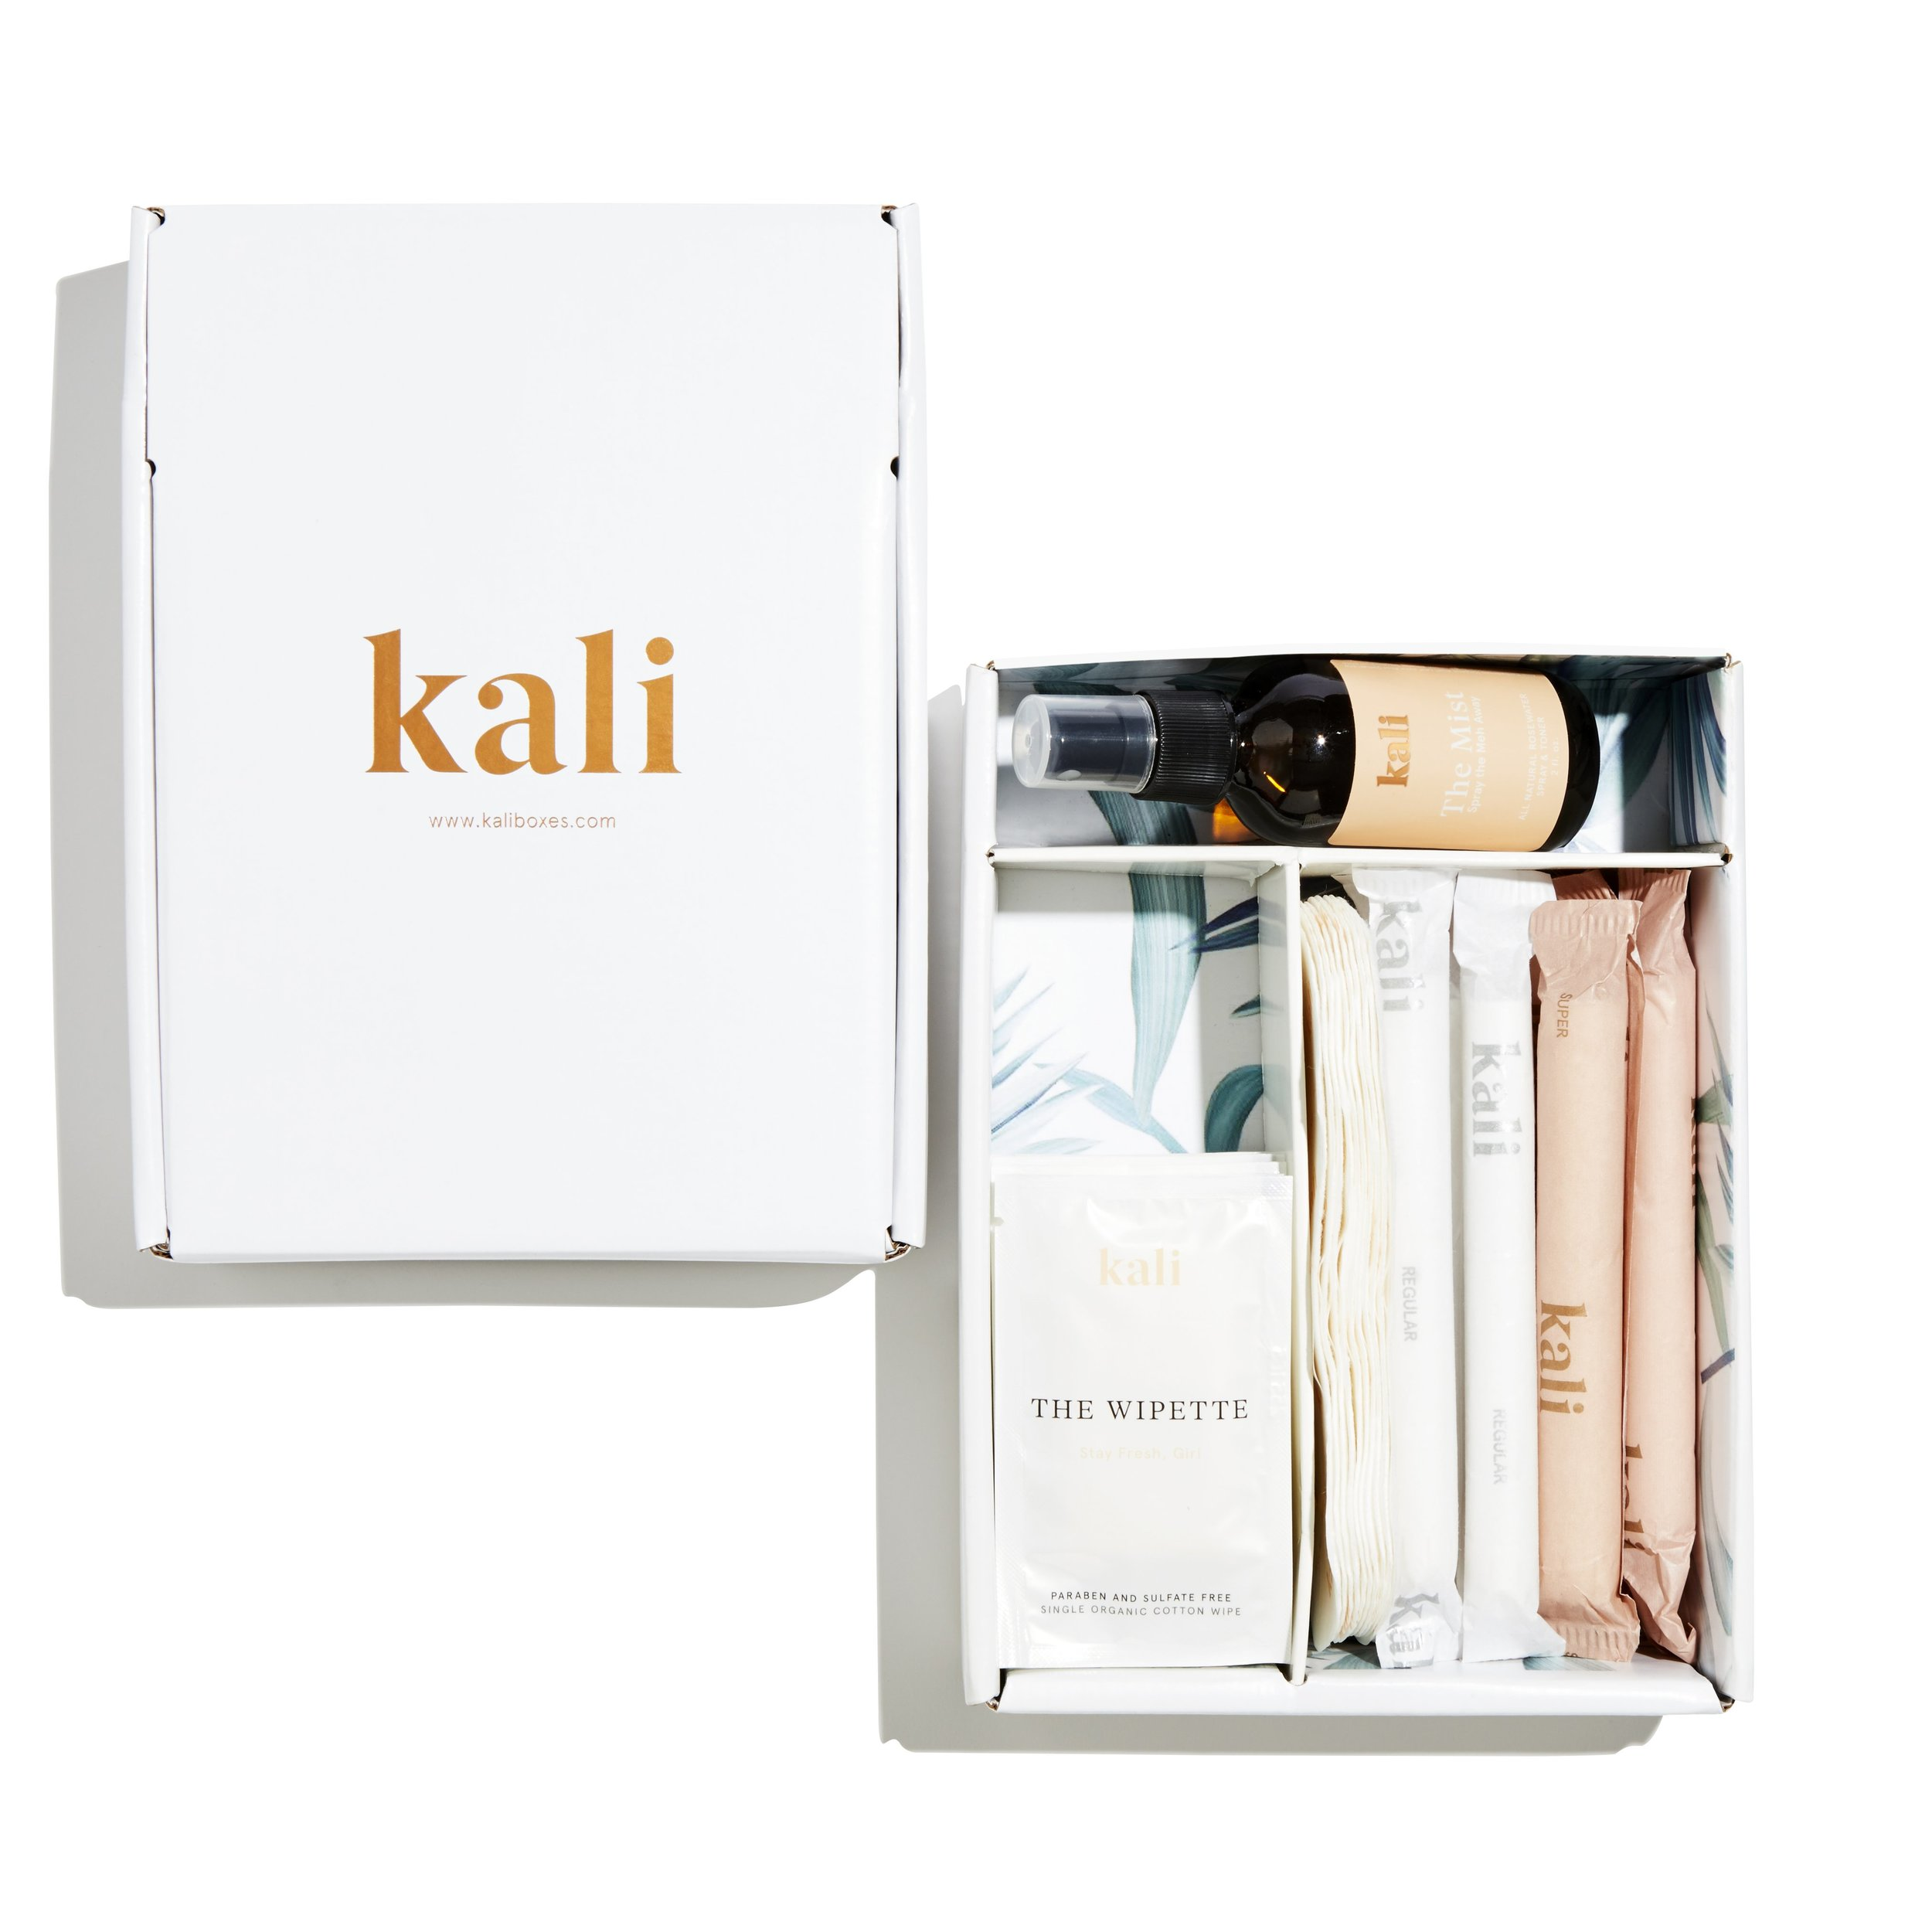 KALI - Jonna Piira founded Kali on the idea that we need tampons and pads every month like clockwork and never have one when we need one. Kali focuses on organic feminine hygiene products and building a wellness community focused on overall health. You can custom design your subscription box to include tampons, pads and essential feminine care add-ons. Kali does a good job in educating the on the importance of health and wellness of a woman's menstrual life.